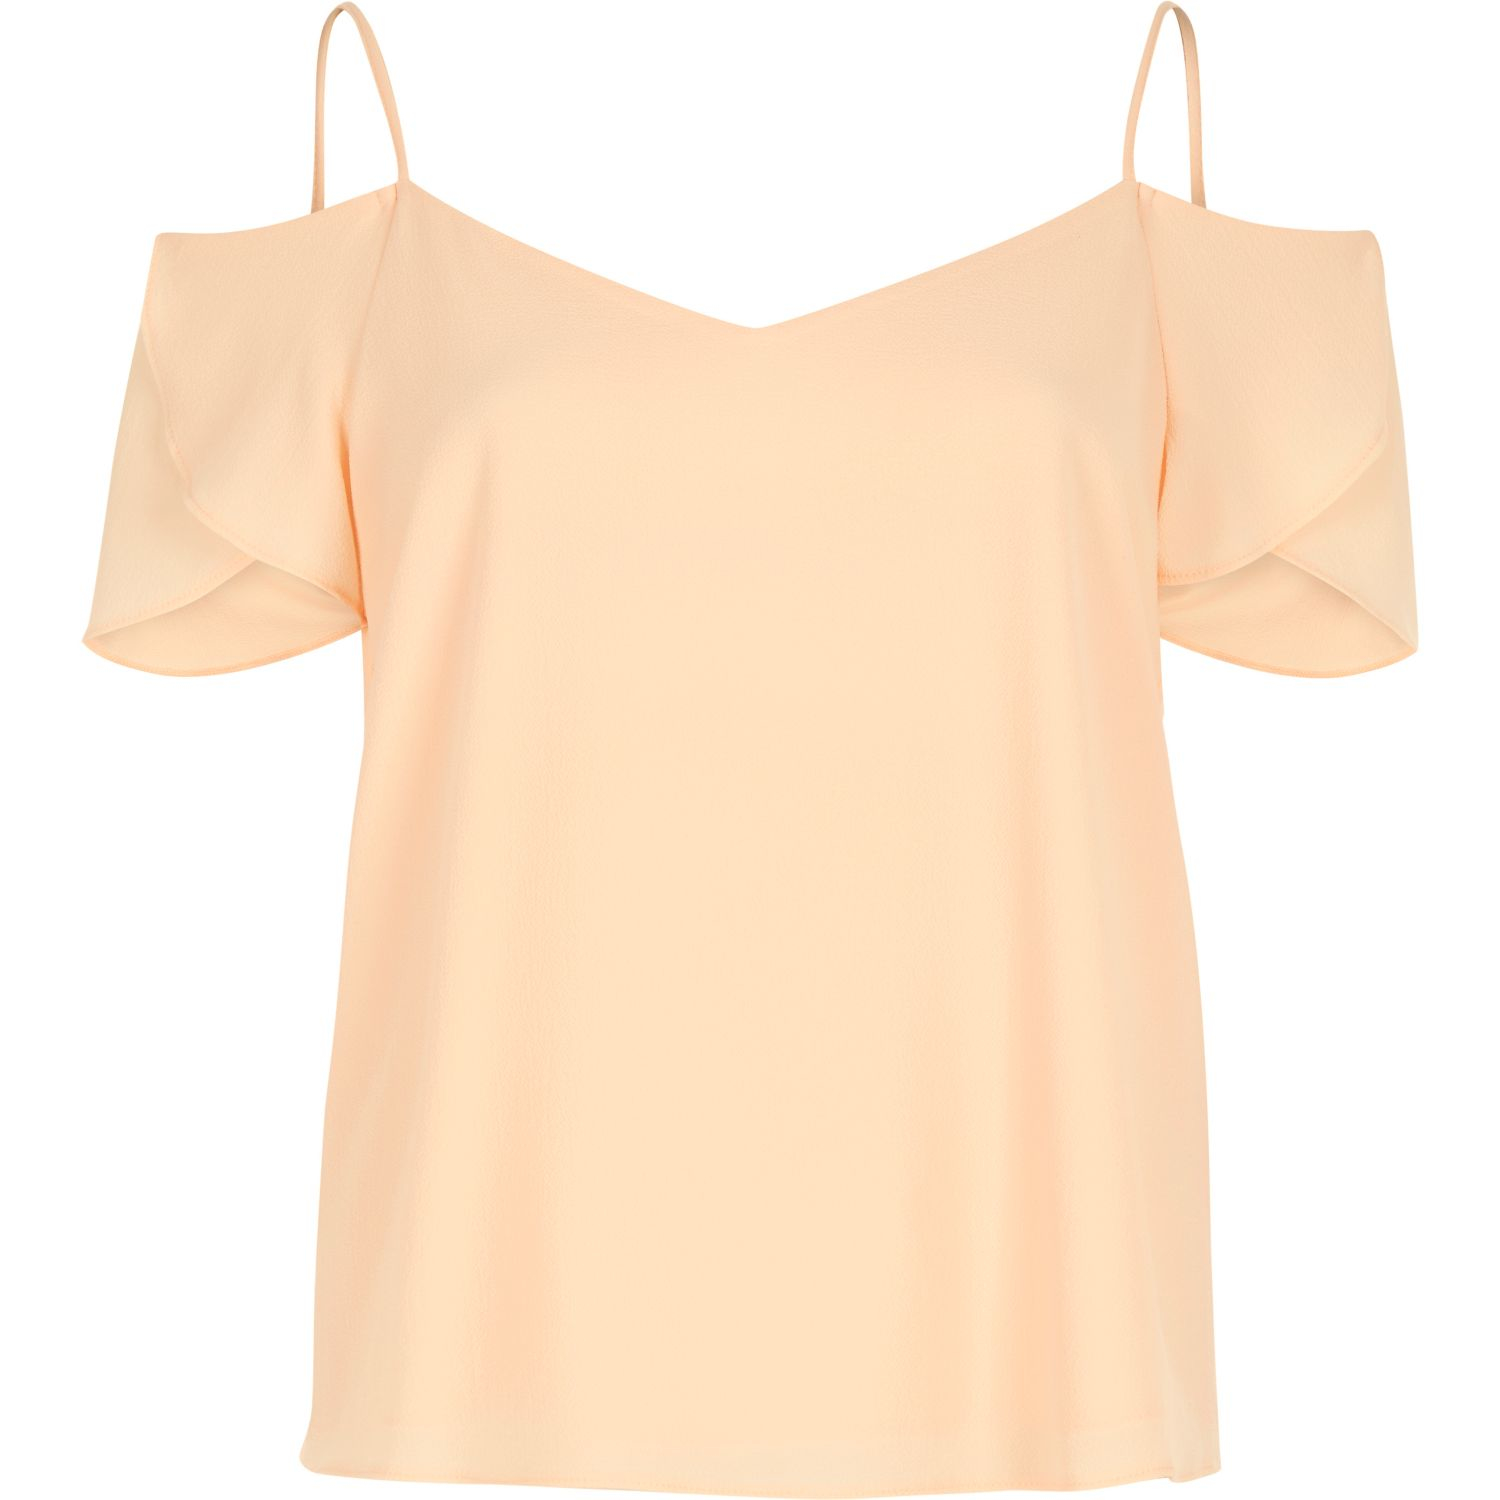 544bb92fdfdb92 River Island Light Coral Cold Shoulder Frilly Sleeve Top in Orange - Lyst